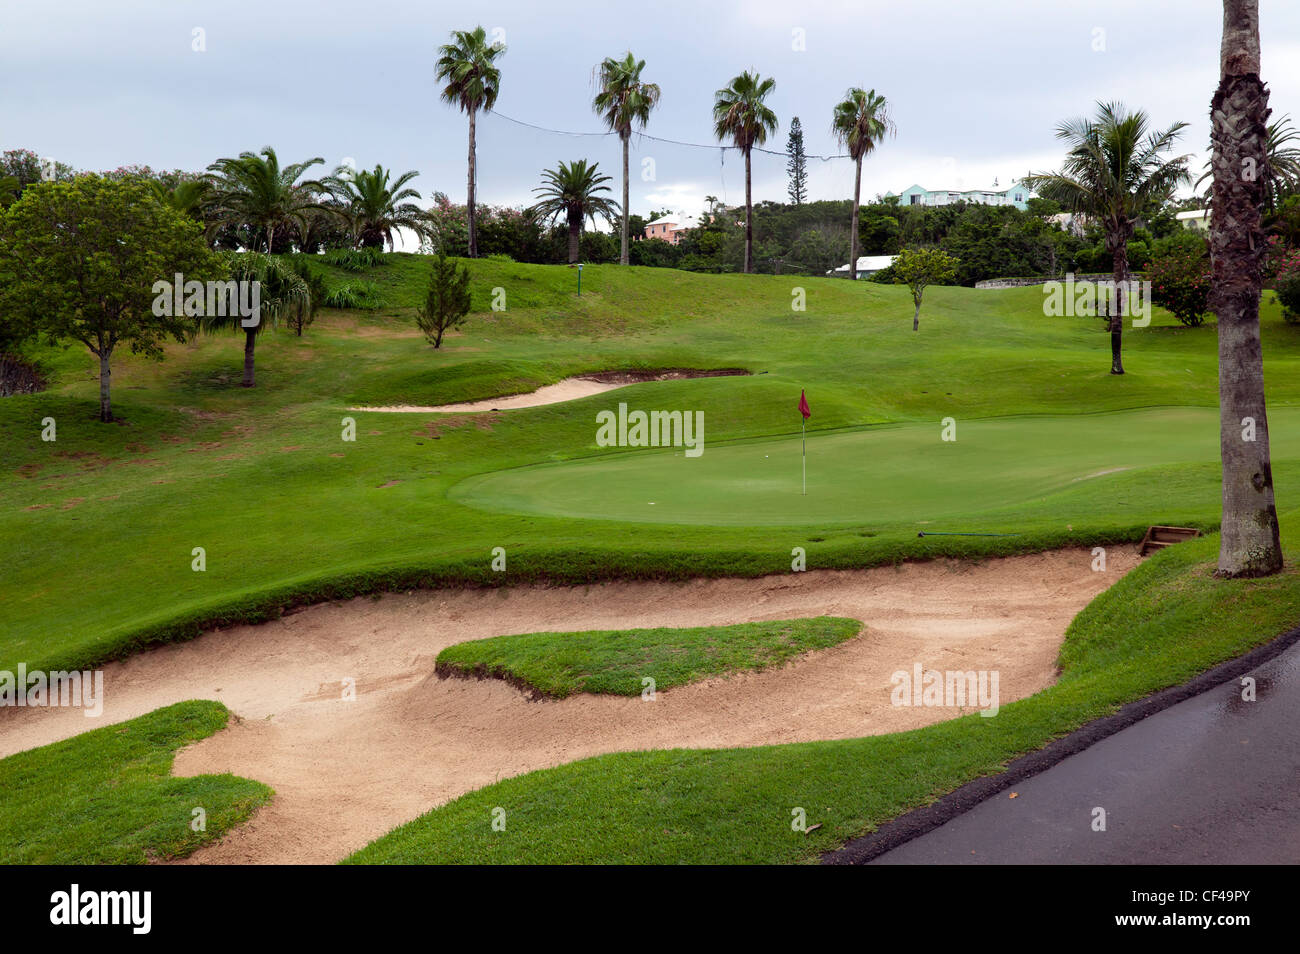 Bunkers and a Green, on the Belmont Hills Golf Course, Belmont Hills Golf Club, Warwick parish, Bermuda. - Stock Image